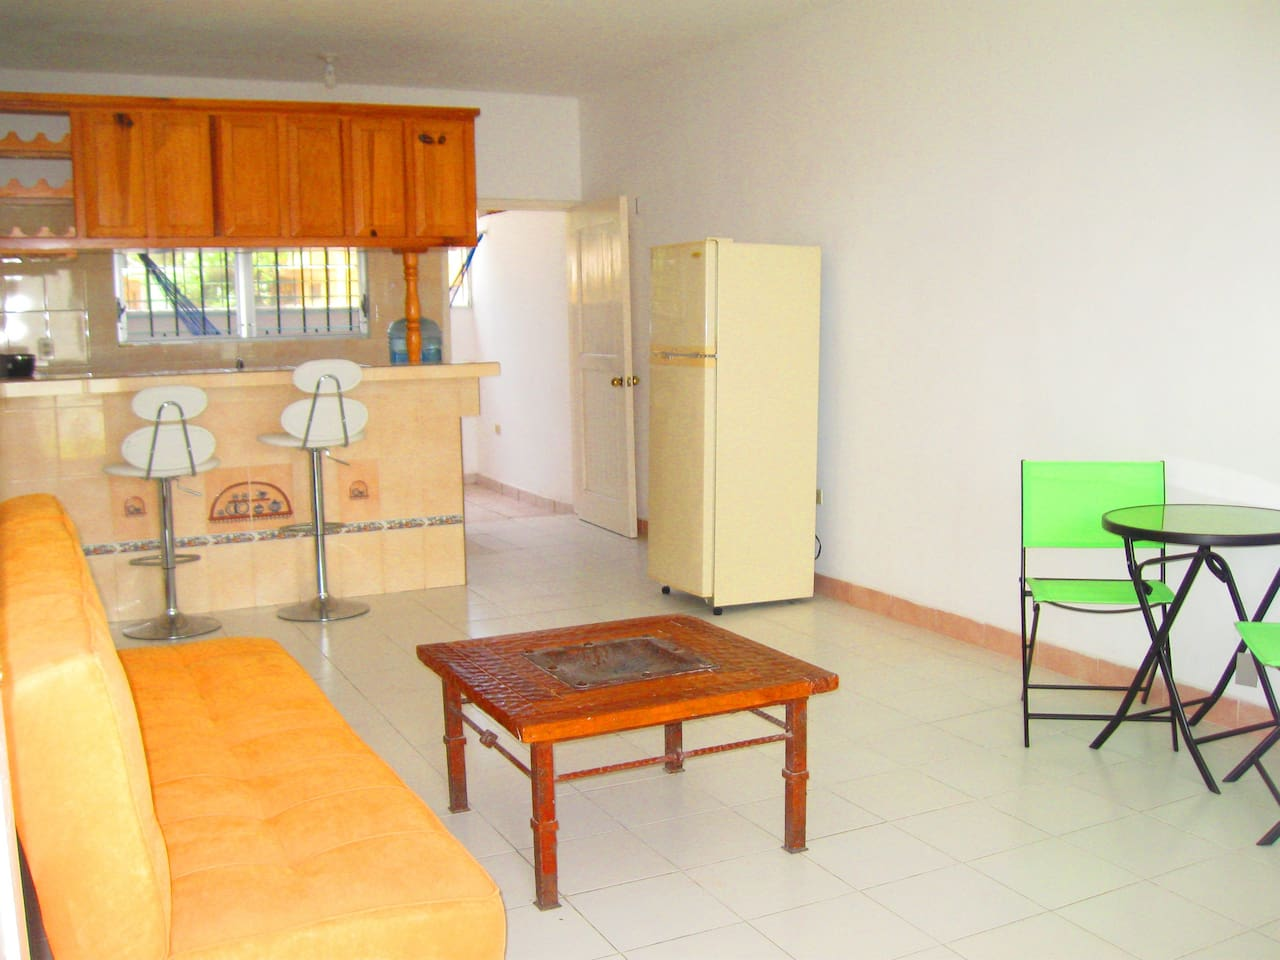 Comfortable living area with full kitchen. Porch room with hammock